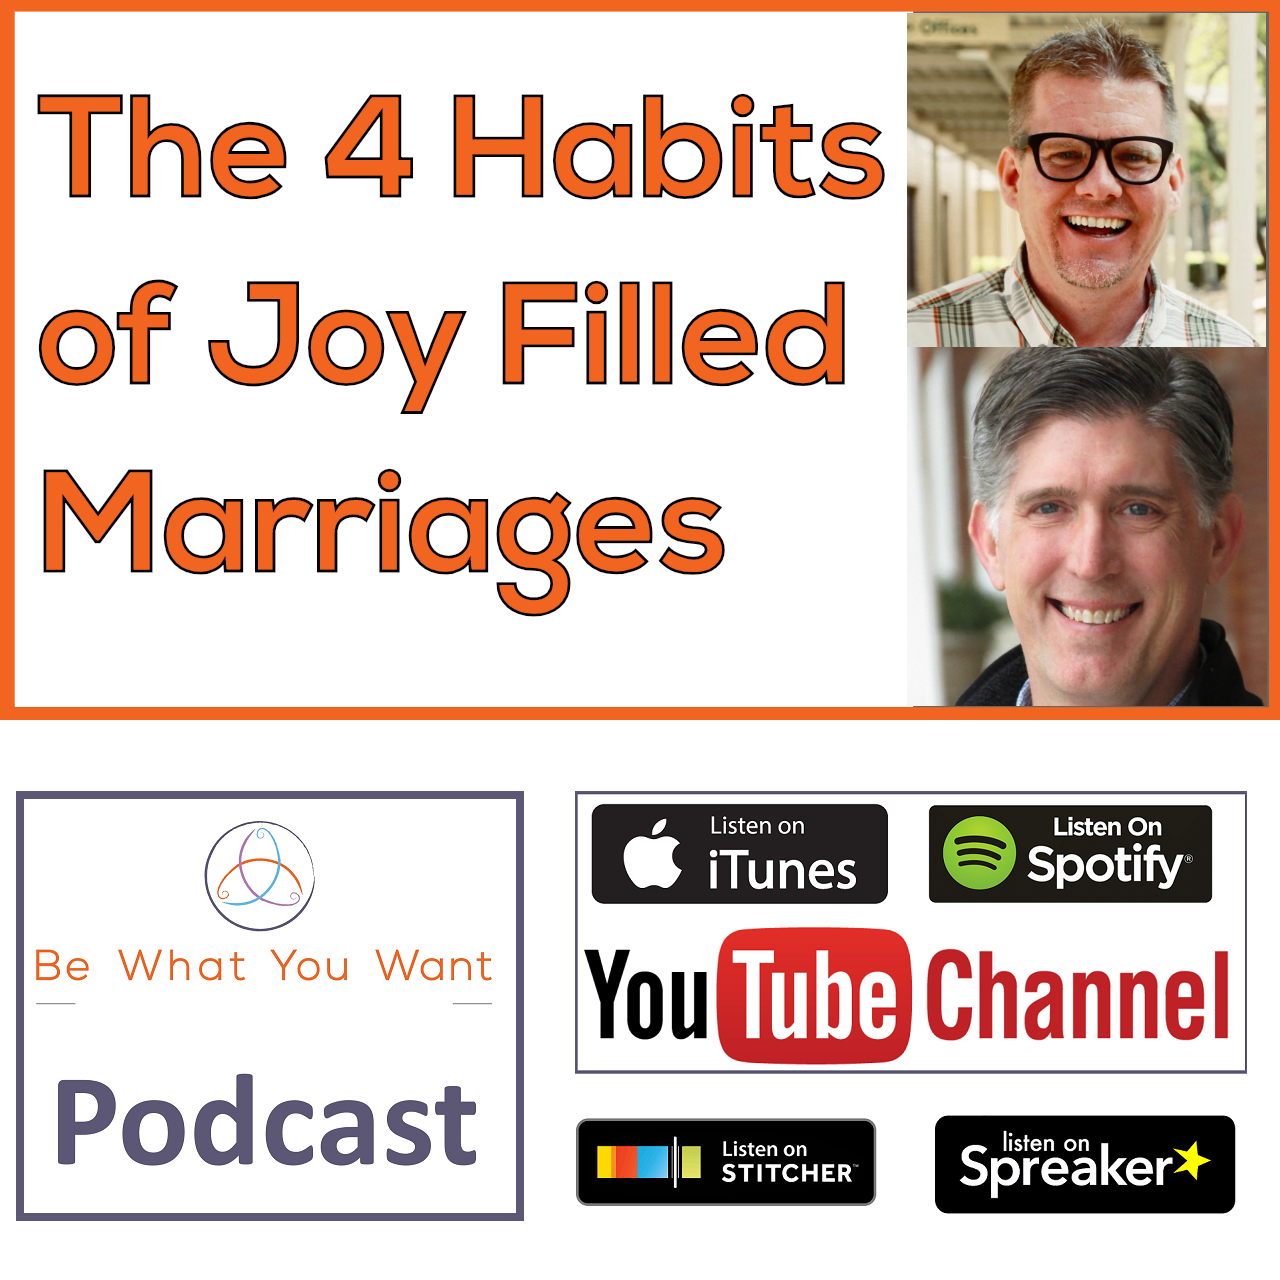 THE 4 HABITS OF JOY-FILLED MARRIAGES - Marcus Warner & Chris M Coursey